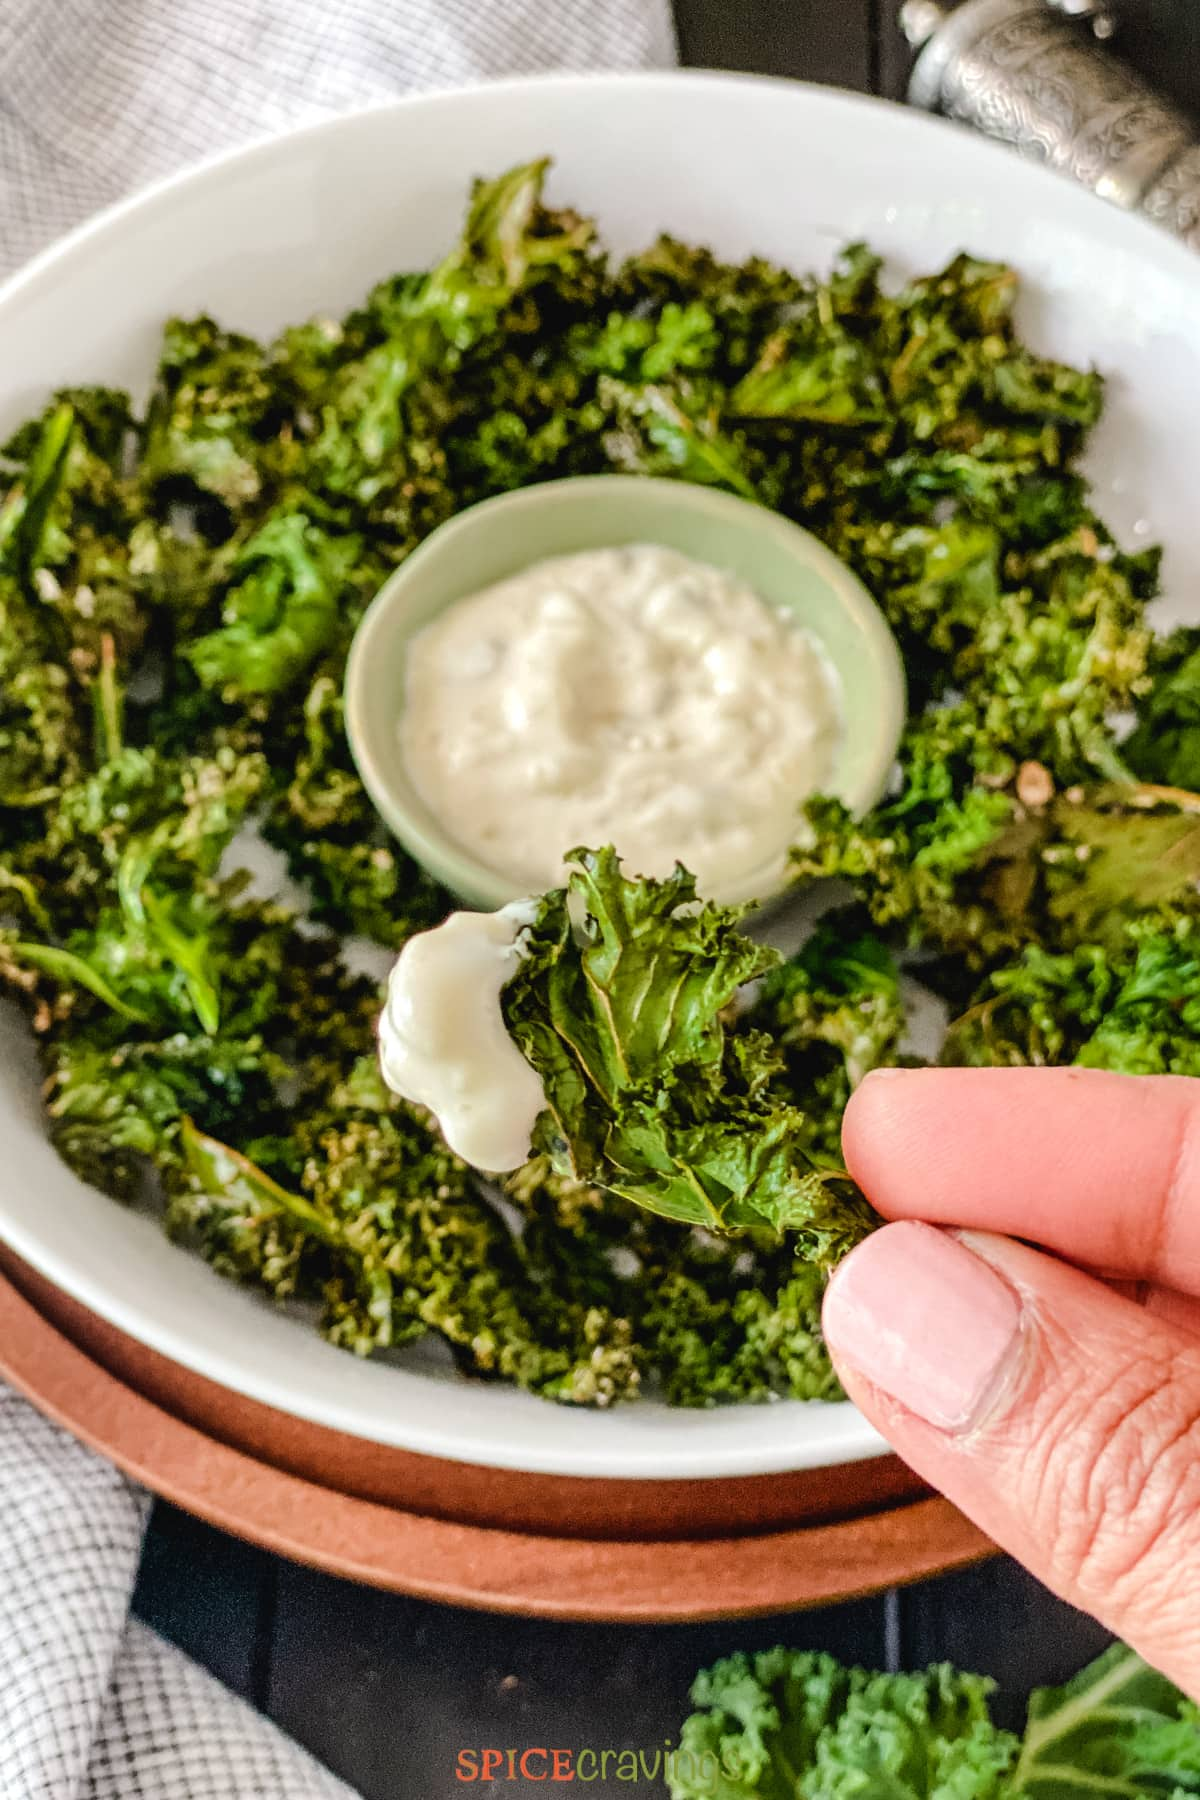 Hand holding Kale chip dipped in lemon caper sauce